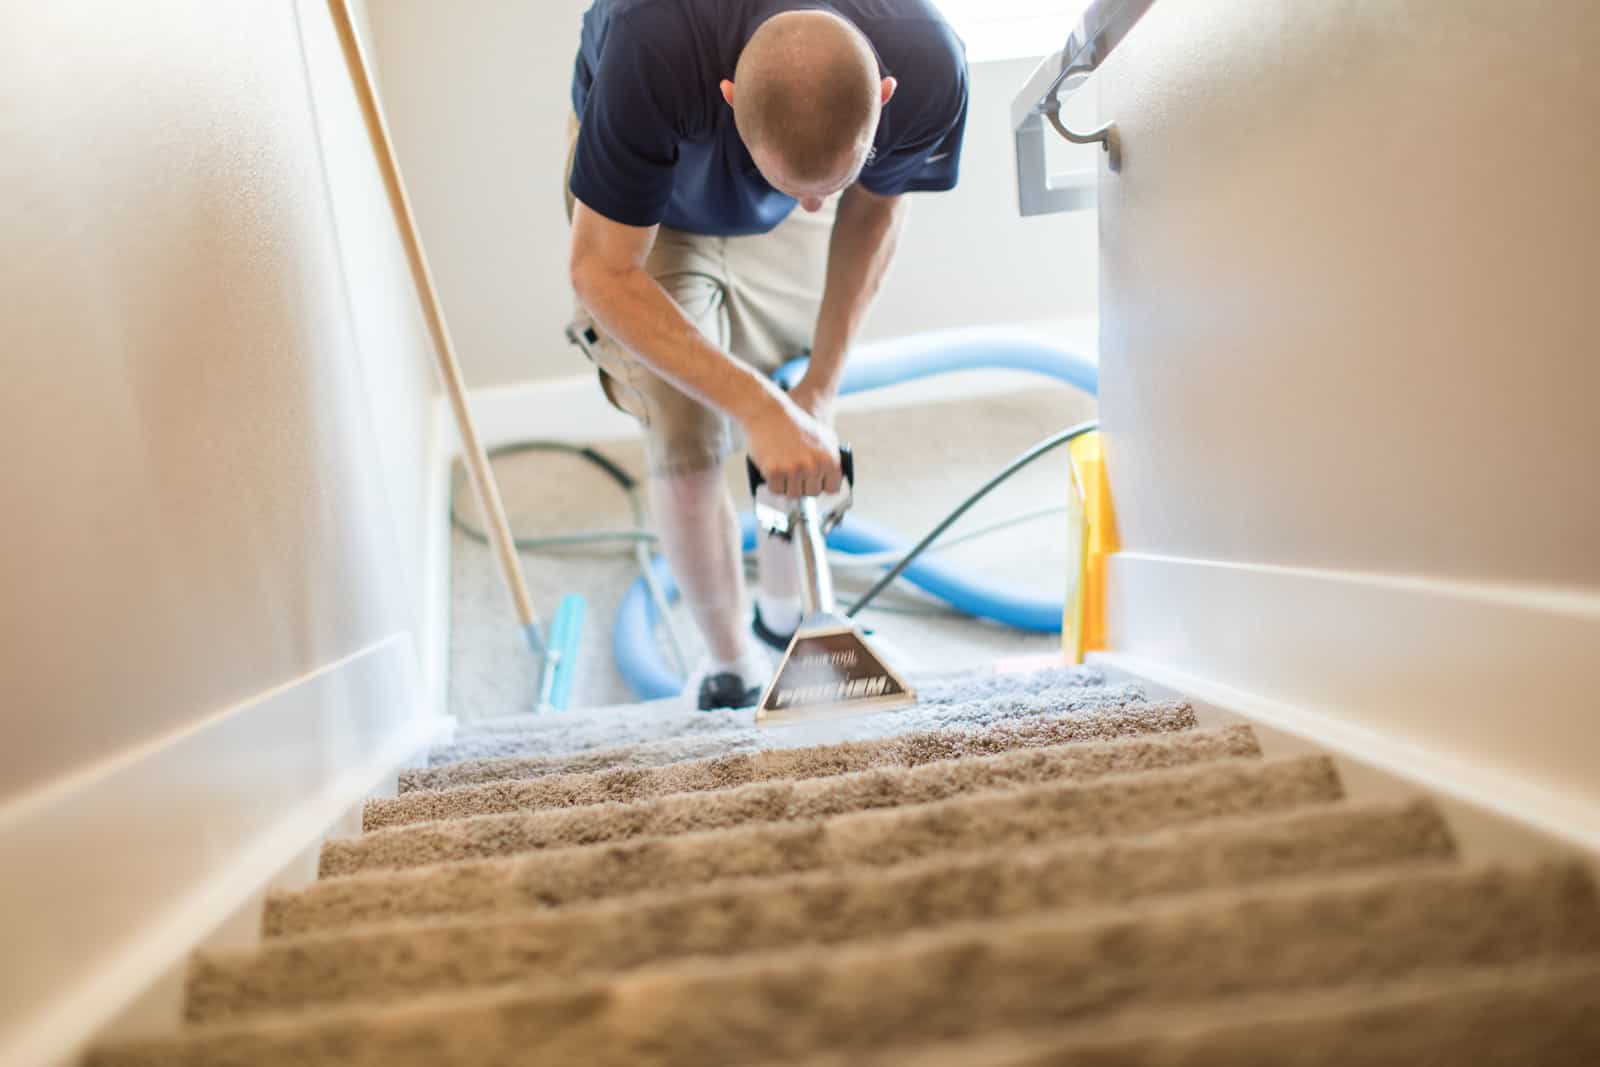 MSS Cleaning employee carpet cleaning staircase with a stair tool